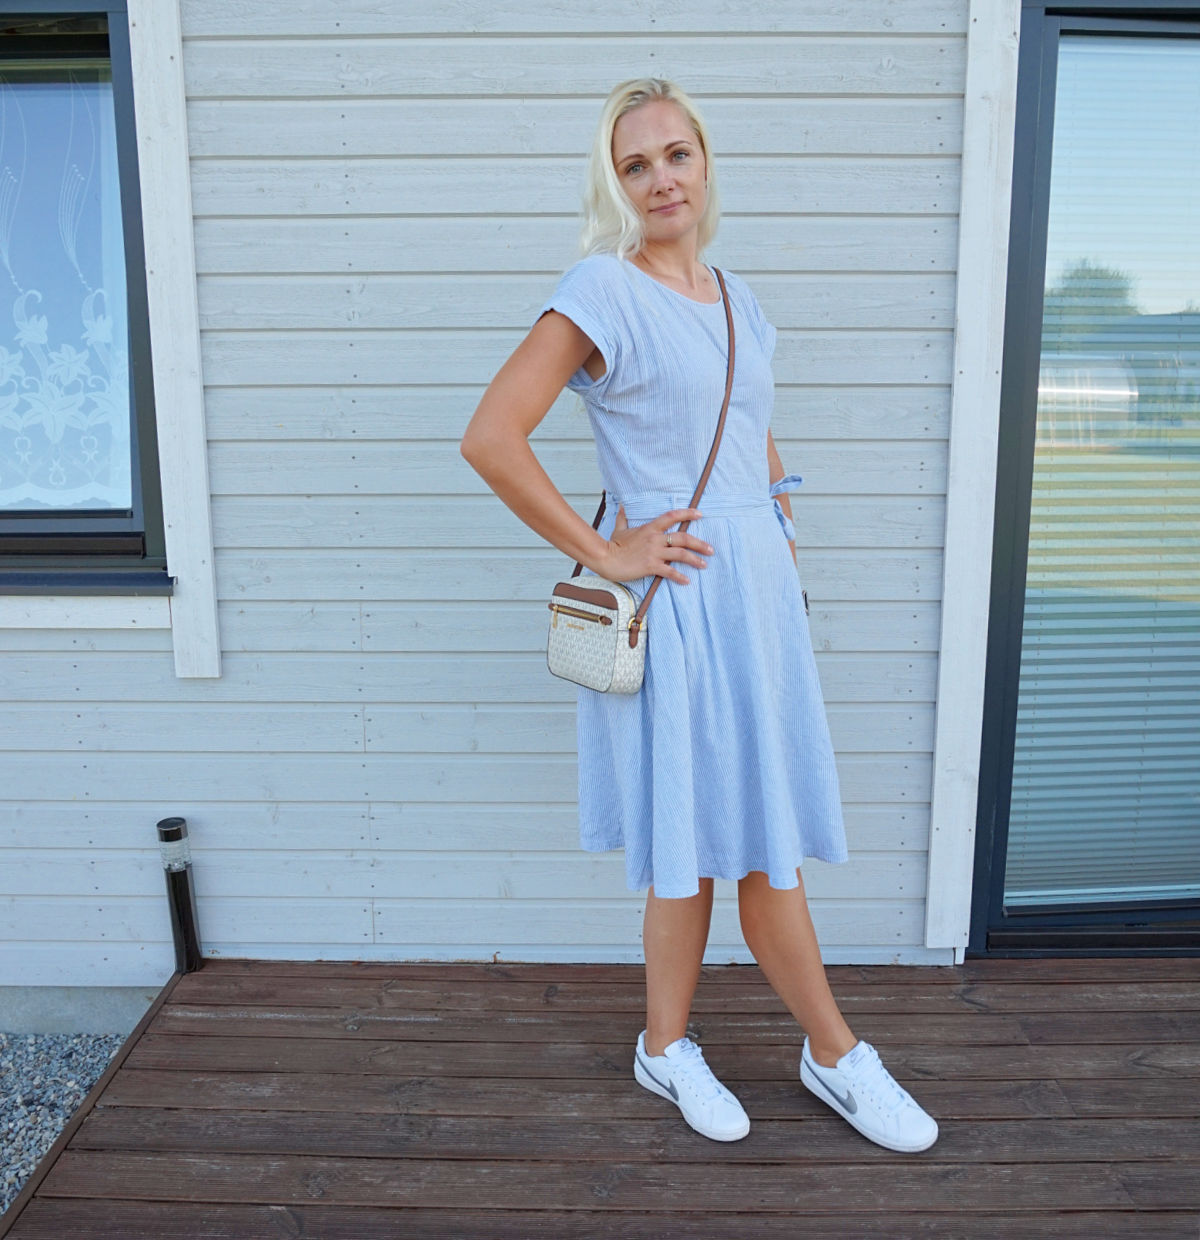 Esprit fit and flare summer dress, white Nike trainers and Michael Kors crossbody bag